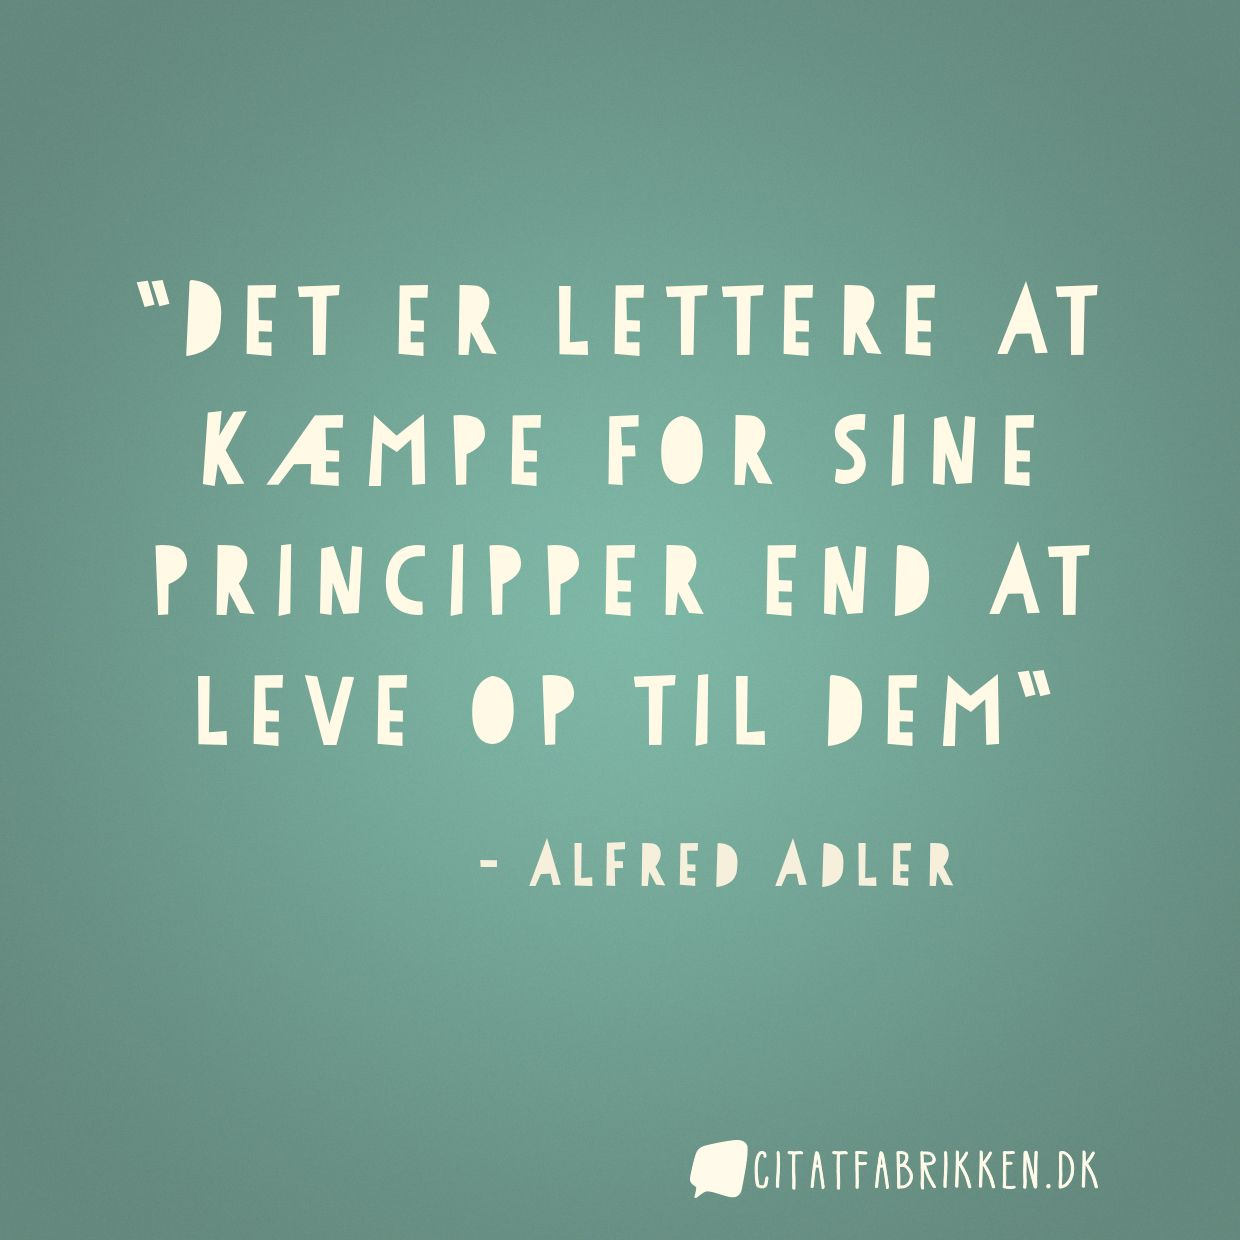 Det er lettere at kæmpe for sine principper end at leve op til dem